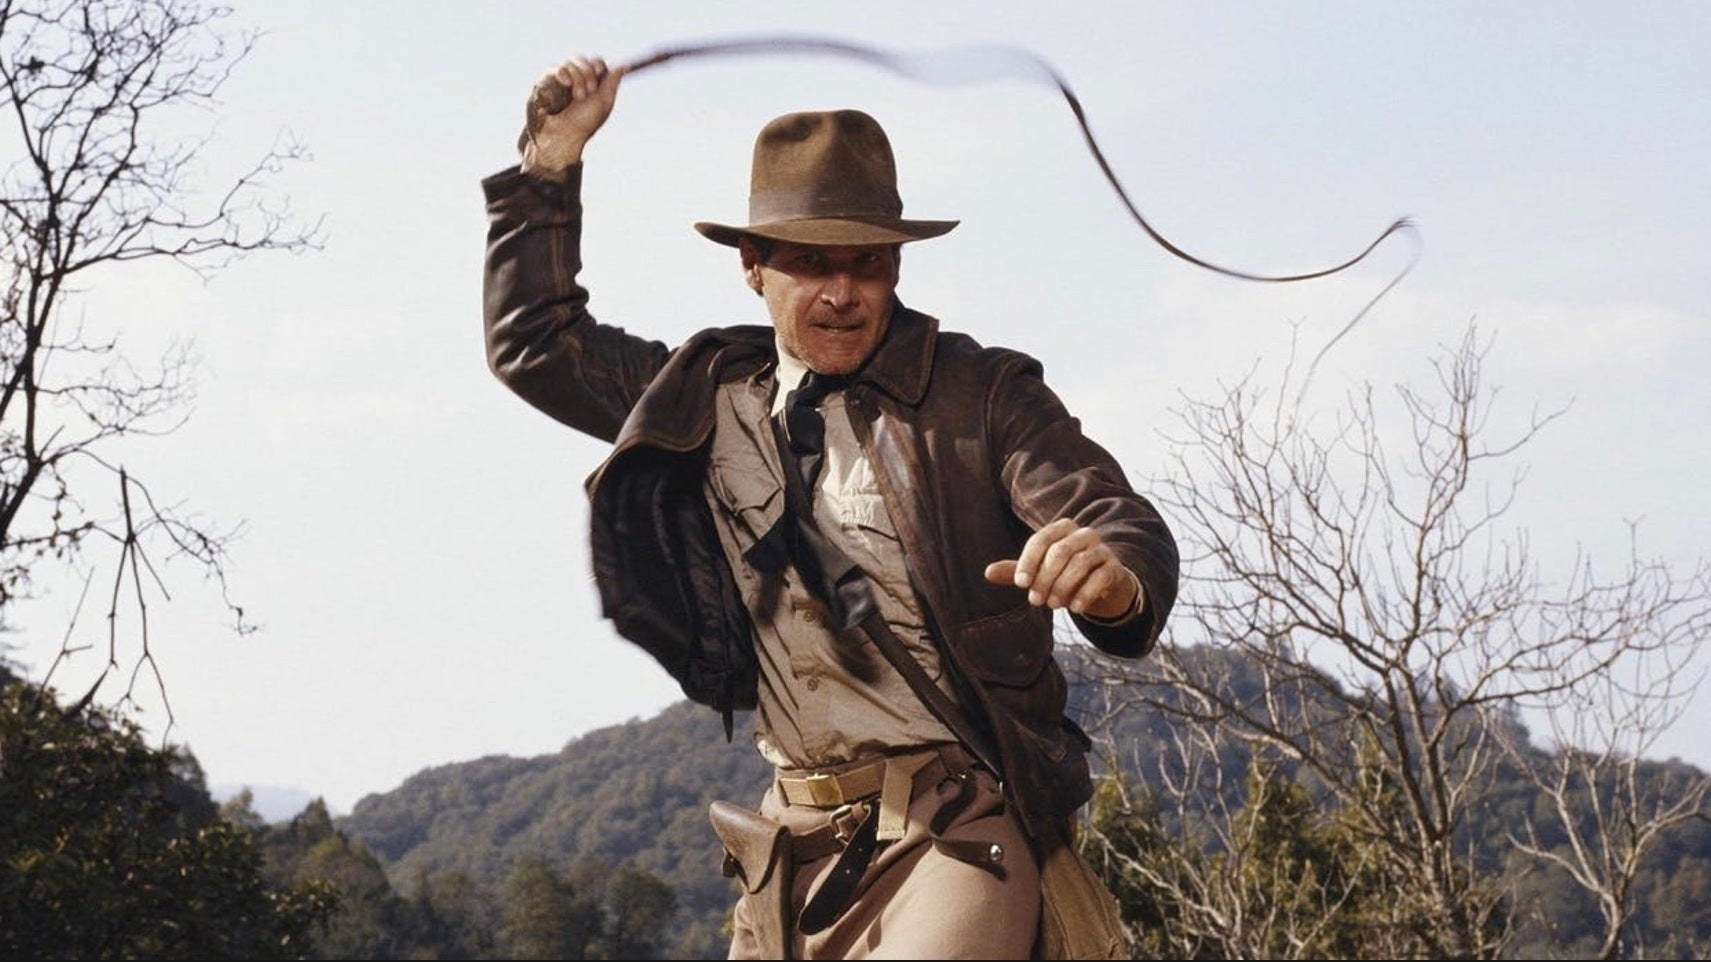 Let The Sound Effects Of Indiana Jones Brighten Up Your Day